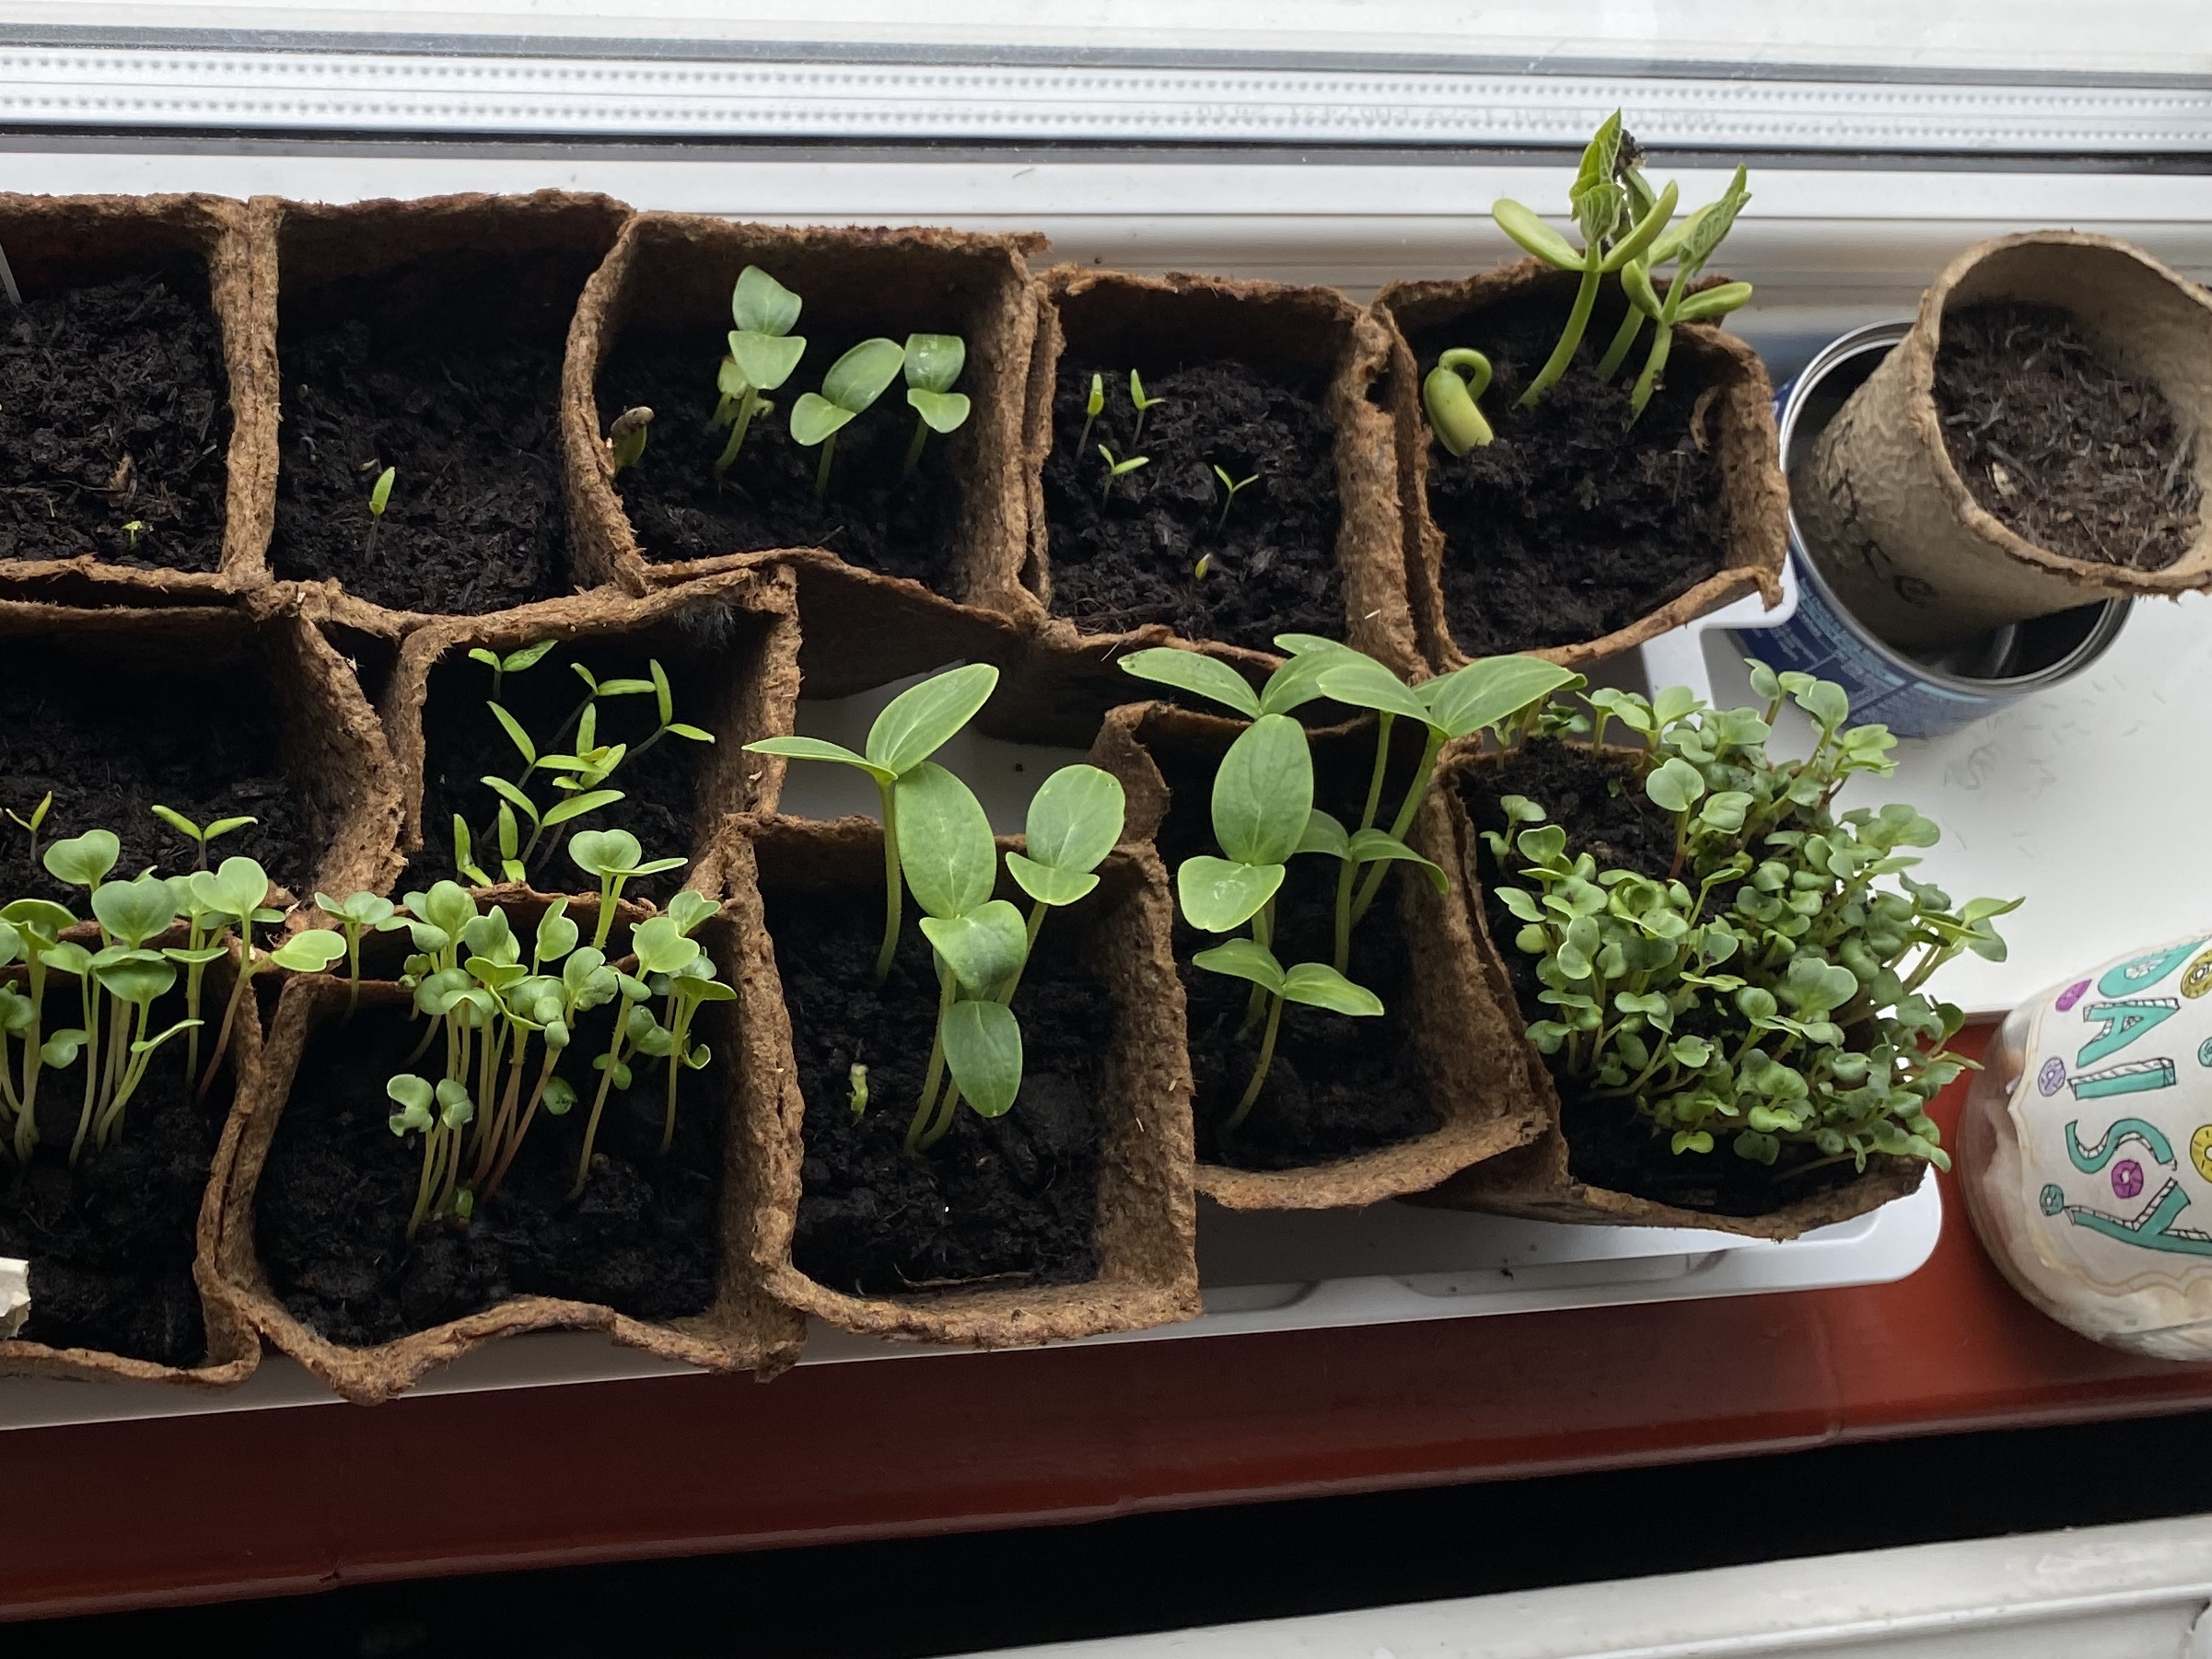 plants growing on the windowsill for us to grow our own food during lockdown